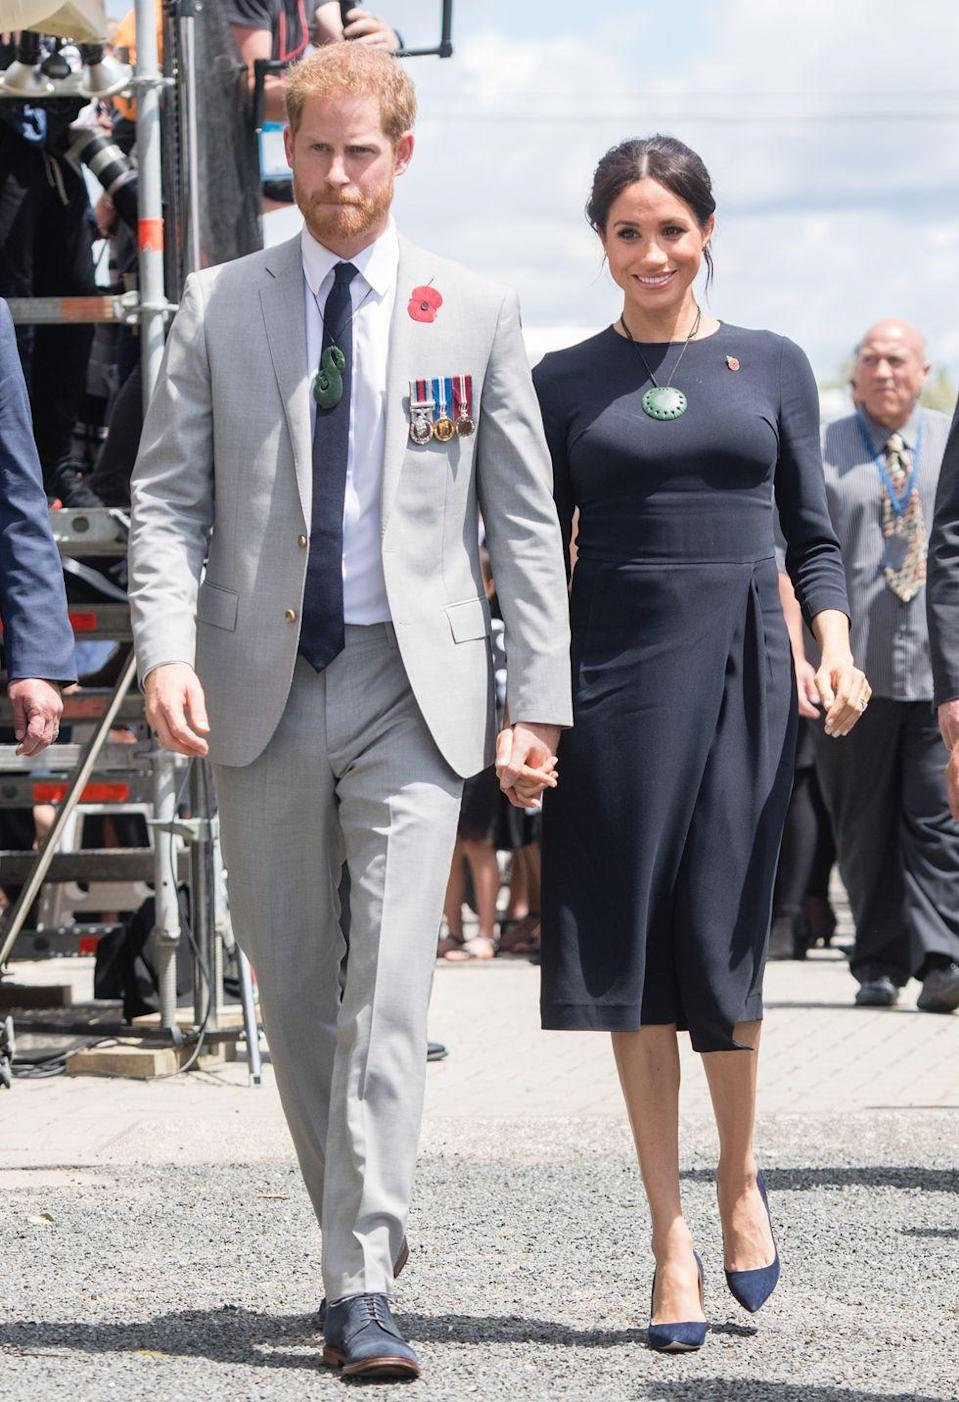 "<p>Meghan <a href=""https://www.townandcountrymag.com/style/fashion-trends/a24450173/meghan-markle-stella-mccartney-navy-midi-dress-final-day-royal-tour-new-zealand/"" rel=""nofollow noopener"" target=""_blank"" data-ylk=""slk:wore a navy blue midi"" class=""link rapid-noclick-resp"">wore a navy blue midi</a> dress by Stella McCartney to kick off the last day of their royal tour. The Ducehss also wore a pair of Manolo pumps.</p><p><a class=""link rapid-noclick-resp"" href=""https://www.barneys.com/product/manolo-blahnik-bb-pumps-503345489.html"" rel=""nofollow noopener"" target=""_blank"" data-ylk=""slk:SHOP NOW"">SHOP NOW</a> <em>Manolo Blahnik Pumps, $625</em></p>"